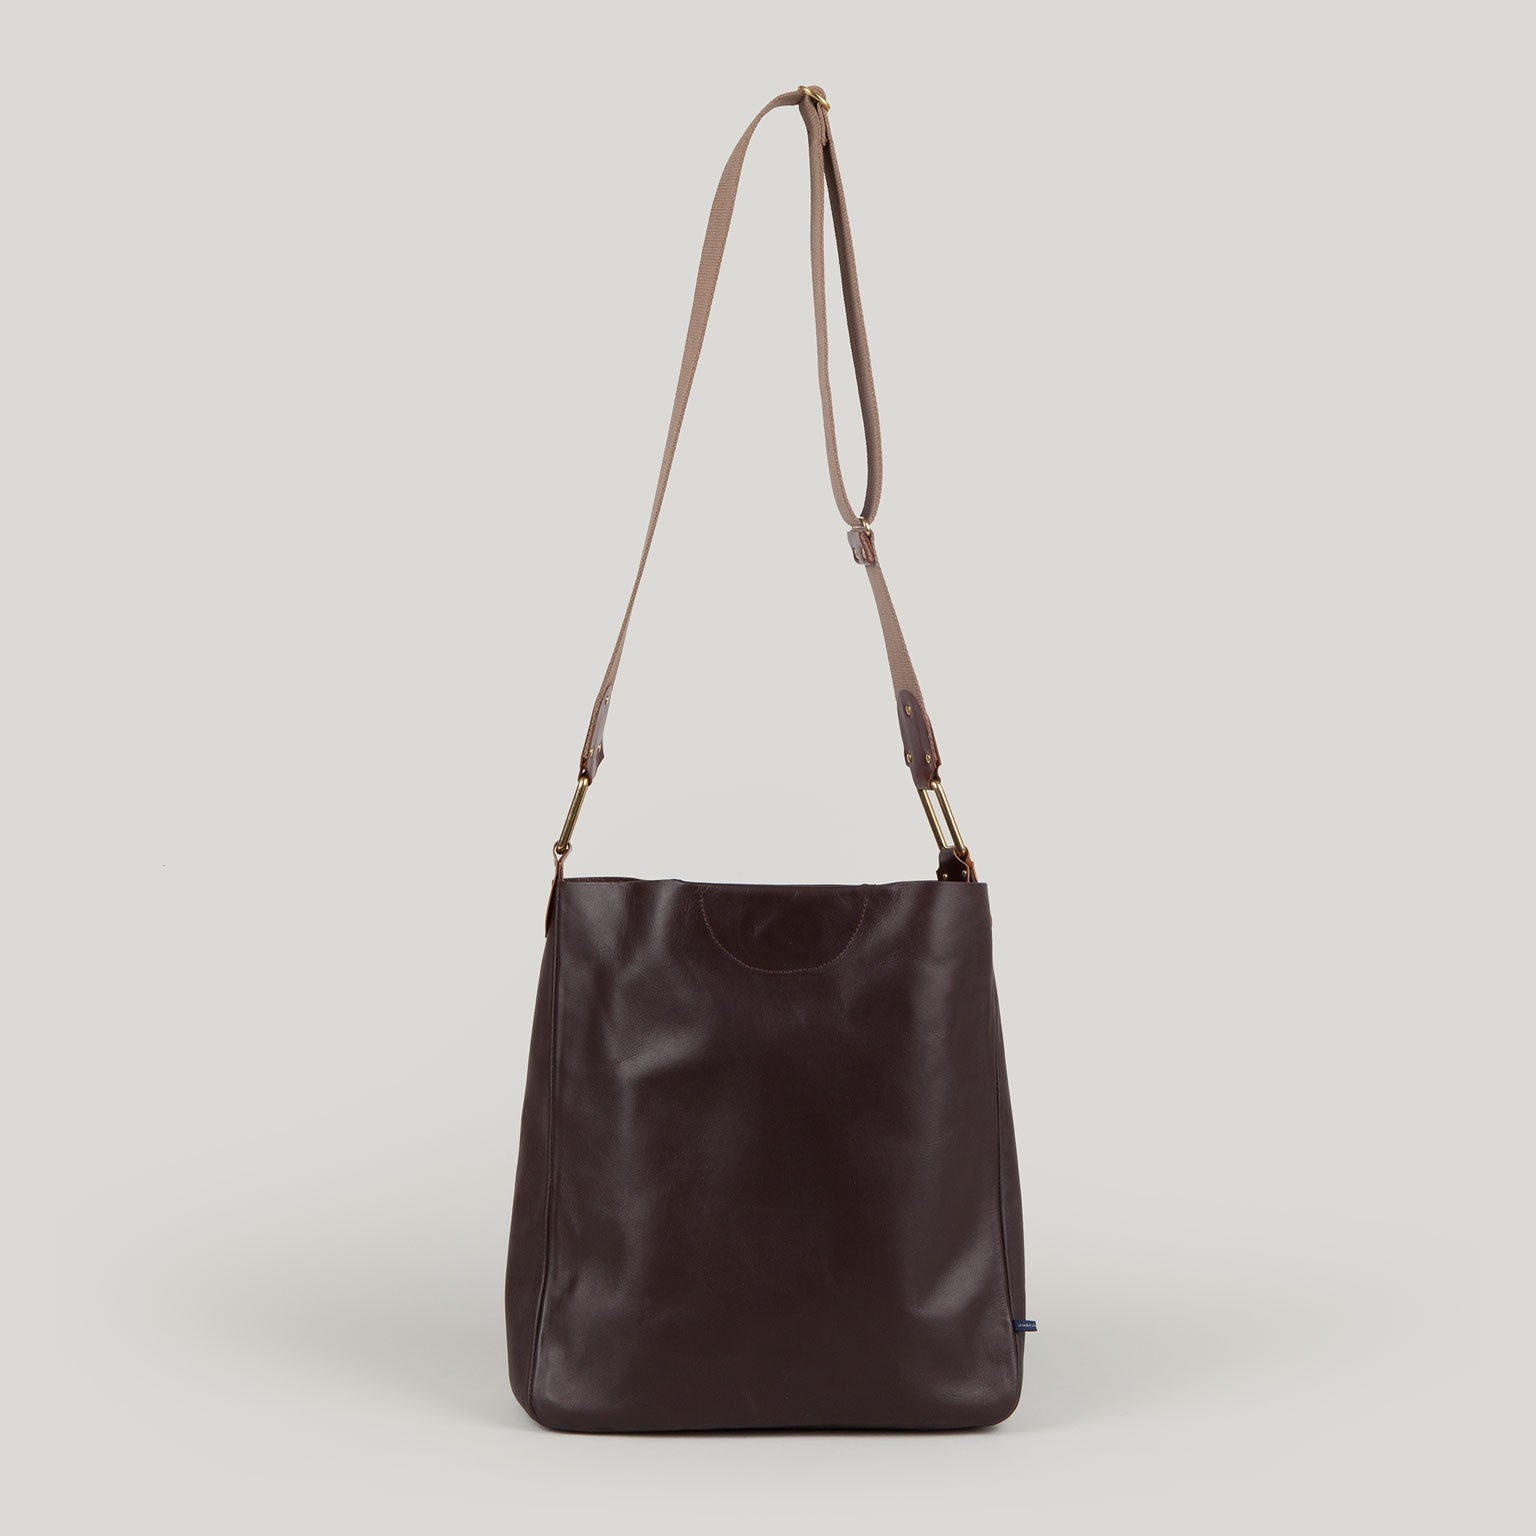 CELESTE leather shoulder bag - chestnut